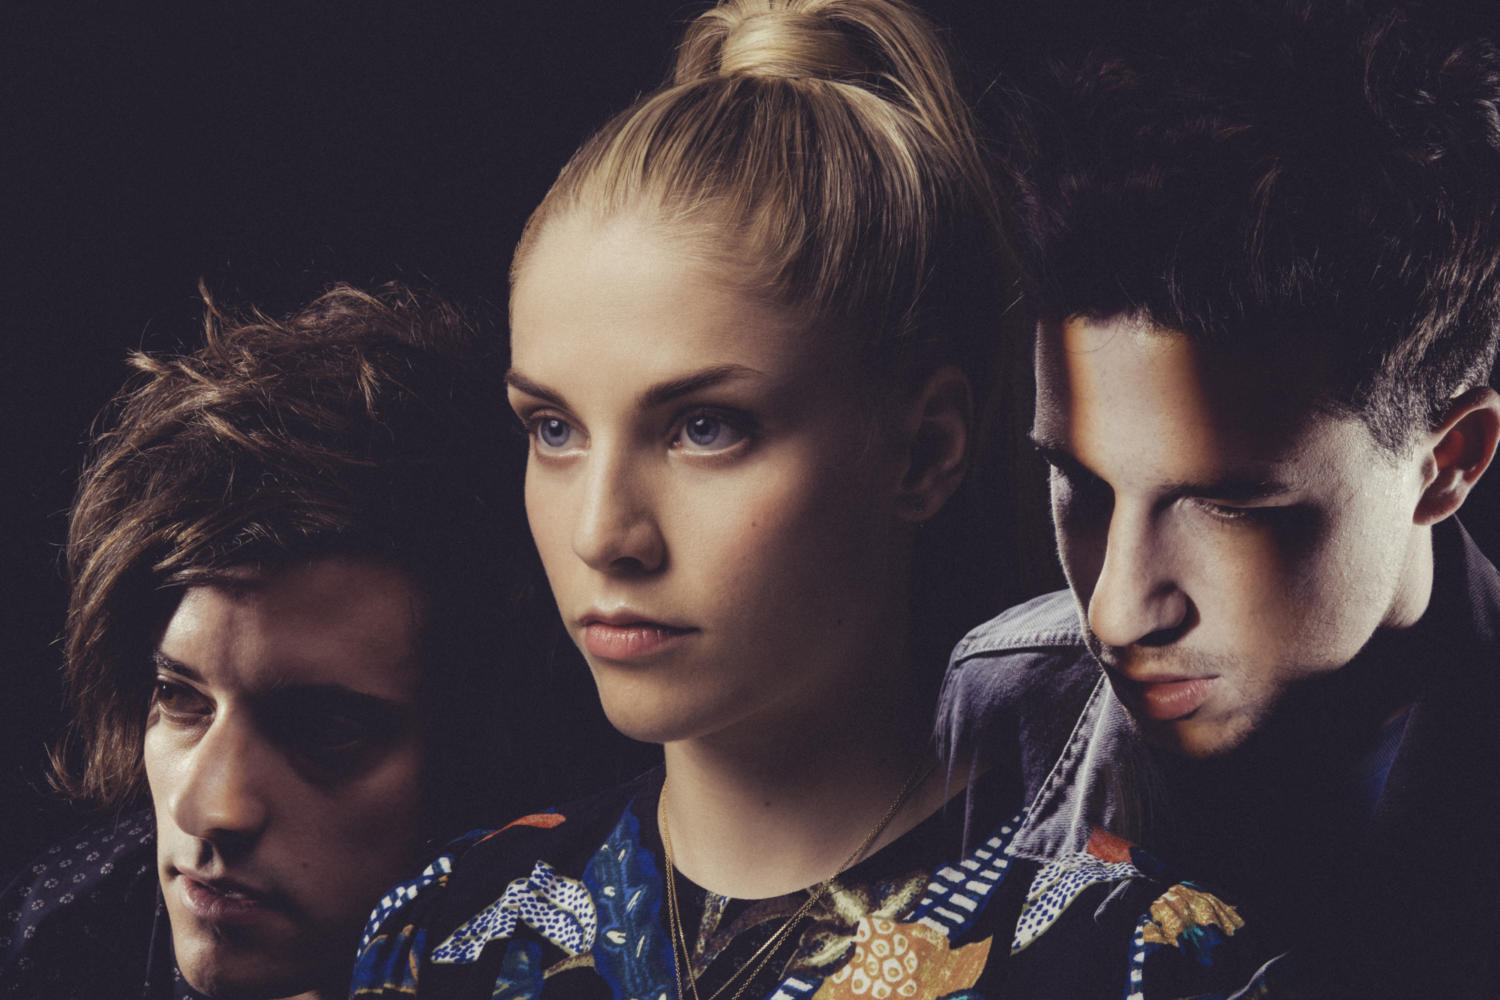 London Grammar have added two new dates to their UK tour